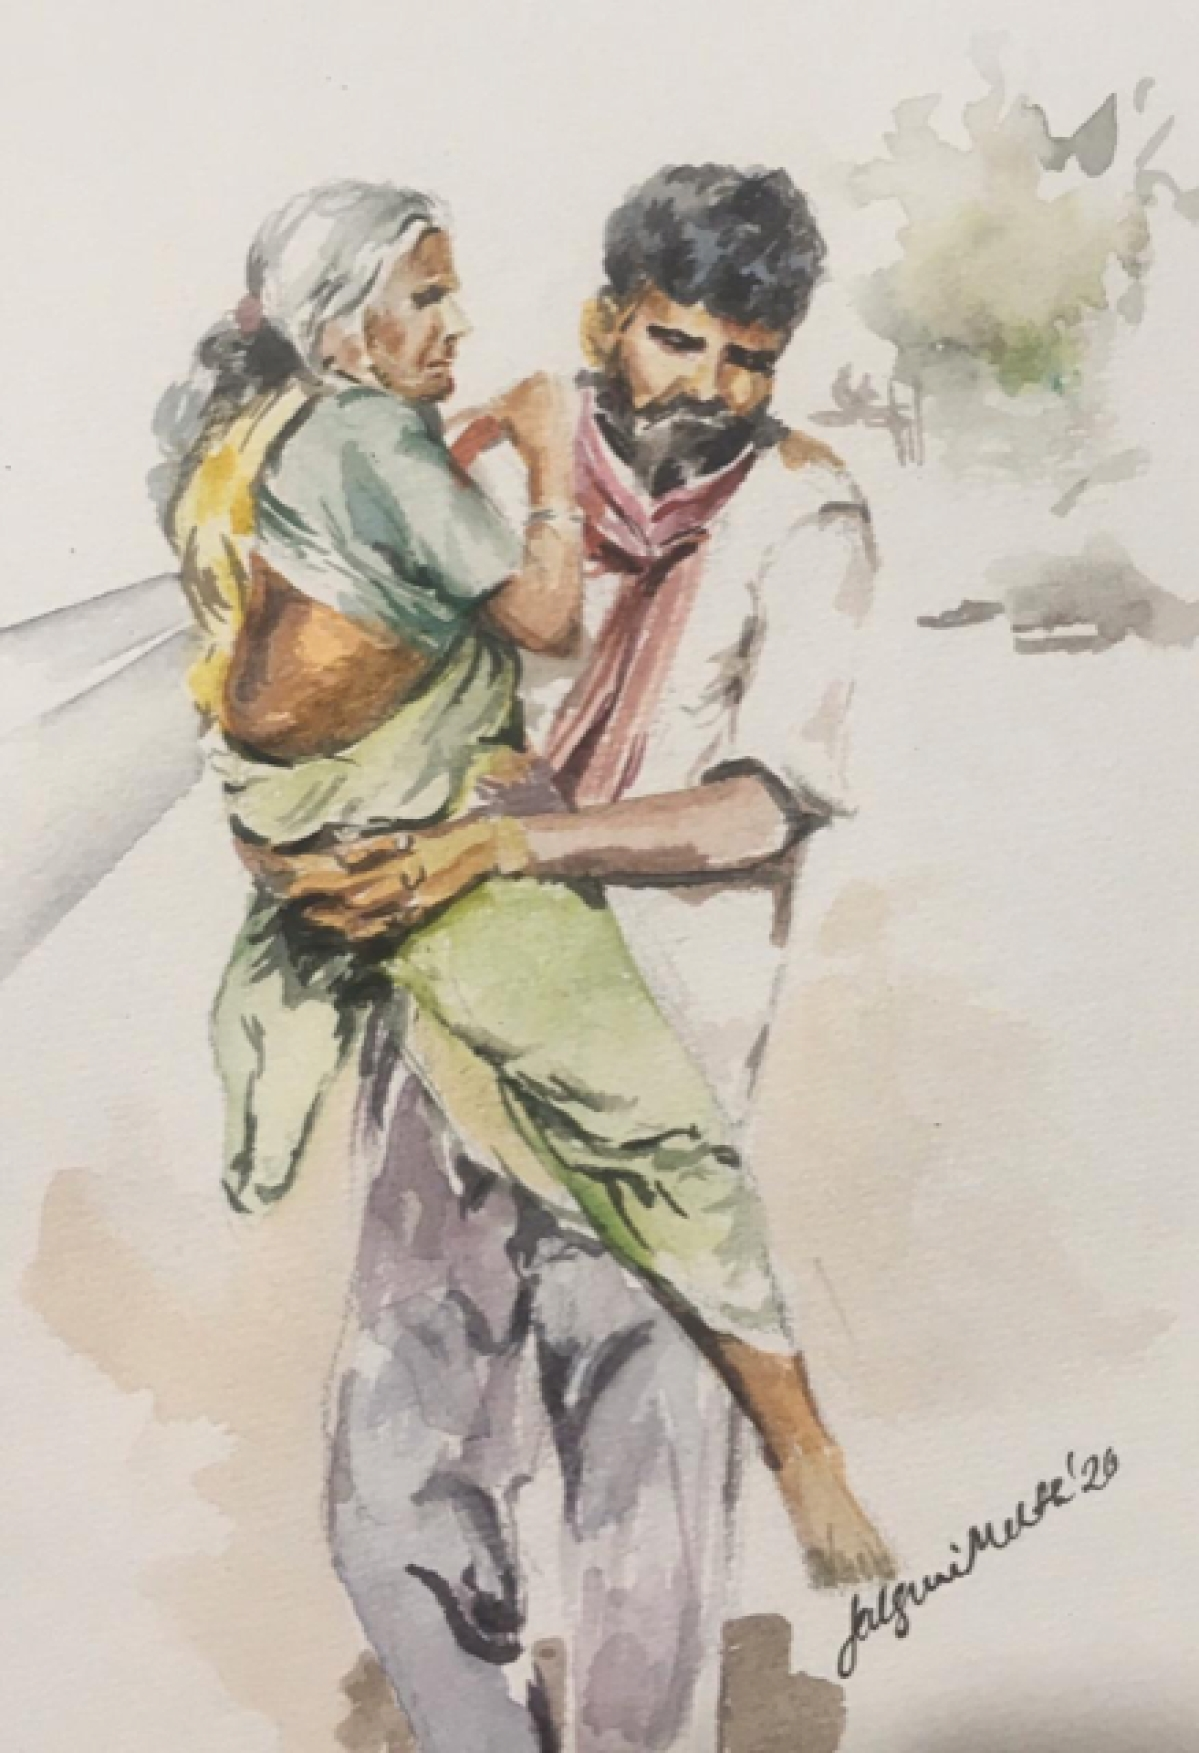 I don't have shelter, hope, help or money in the city. But that is no reason to abandon my mother.  The love for her has nothing to do with materialistic needs. I shall carry her to sanity and life!